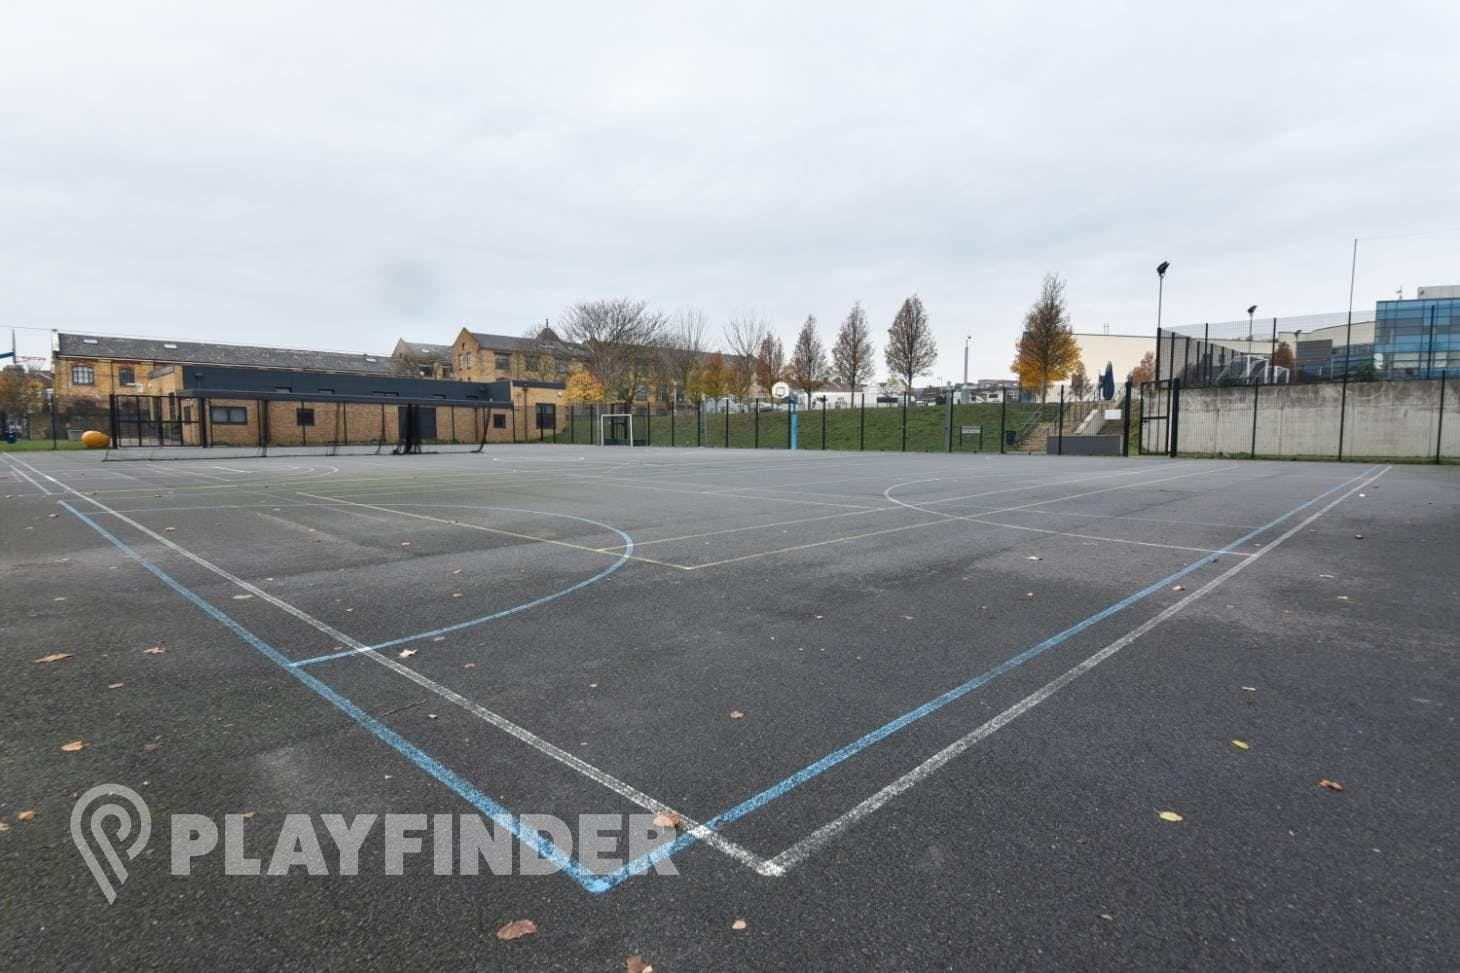 The Petchey Academy Sports Club Outdoor | Hard (macadam) netball court